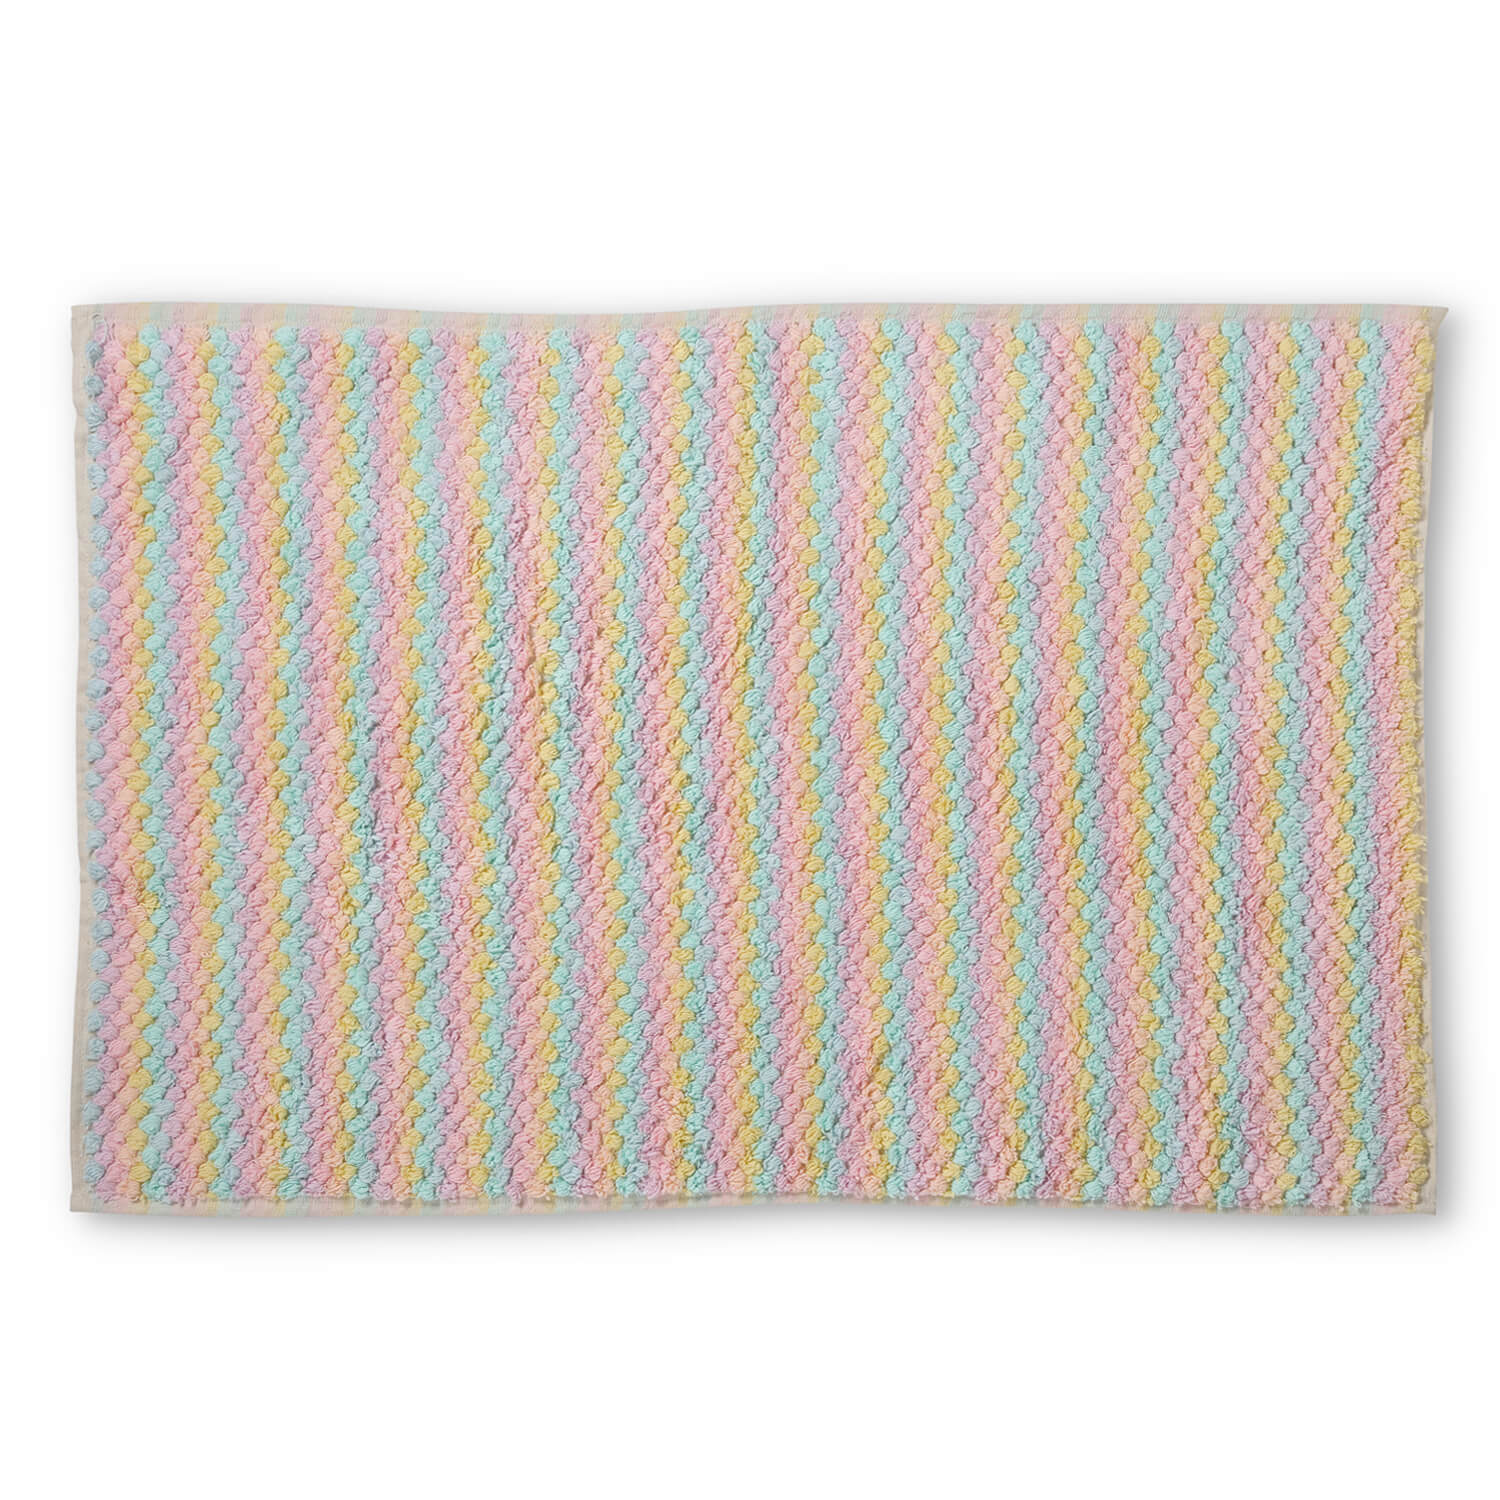 kip and co turkish towels pebbles bath mat without fringes |The Home Maven